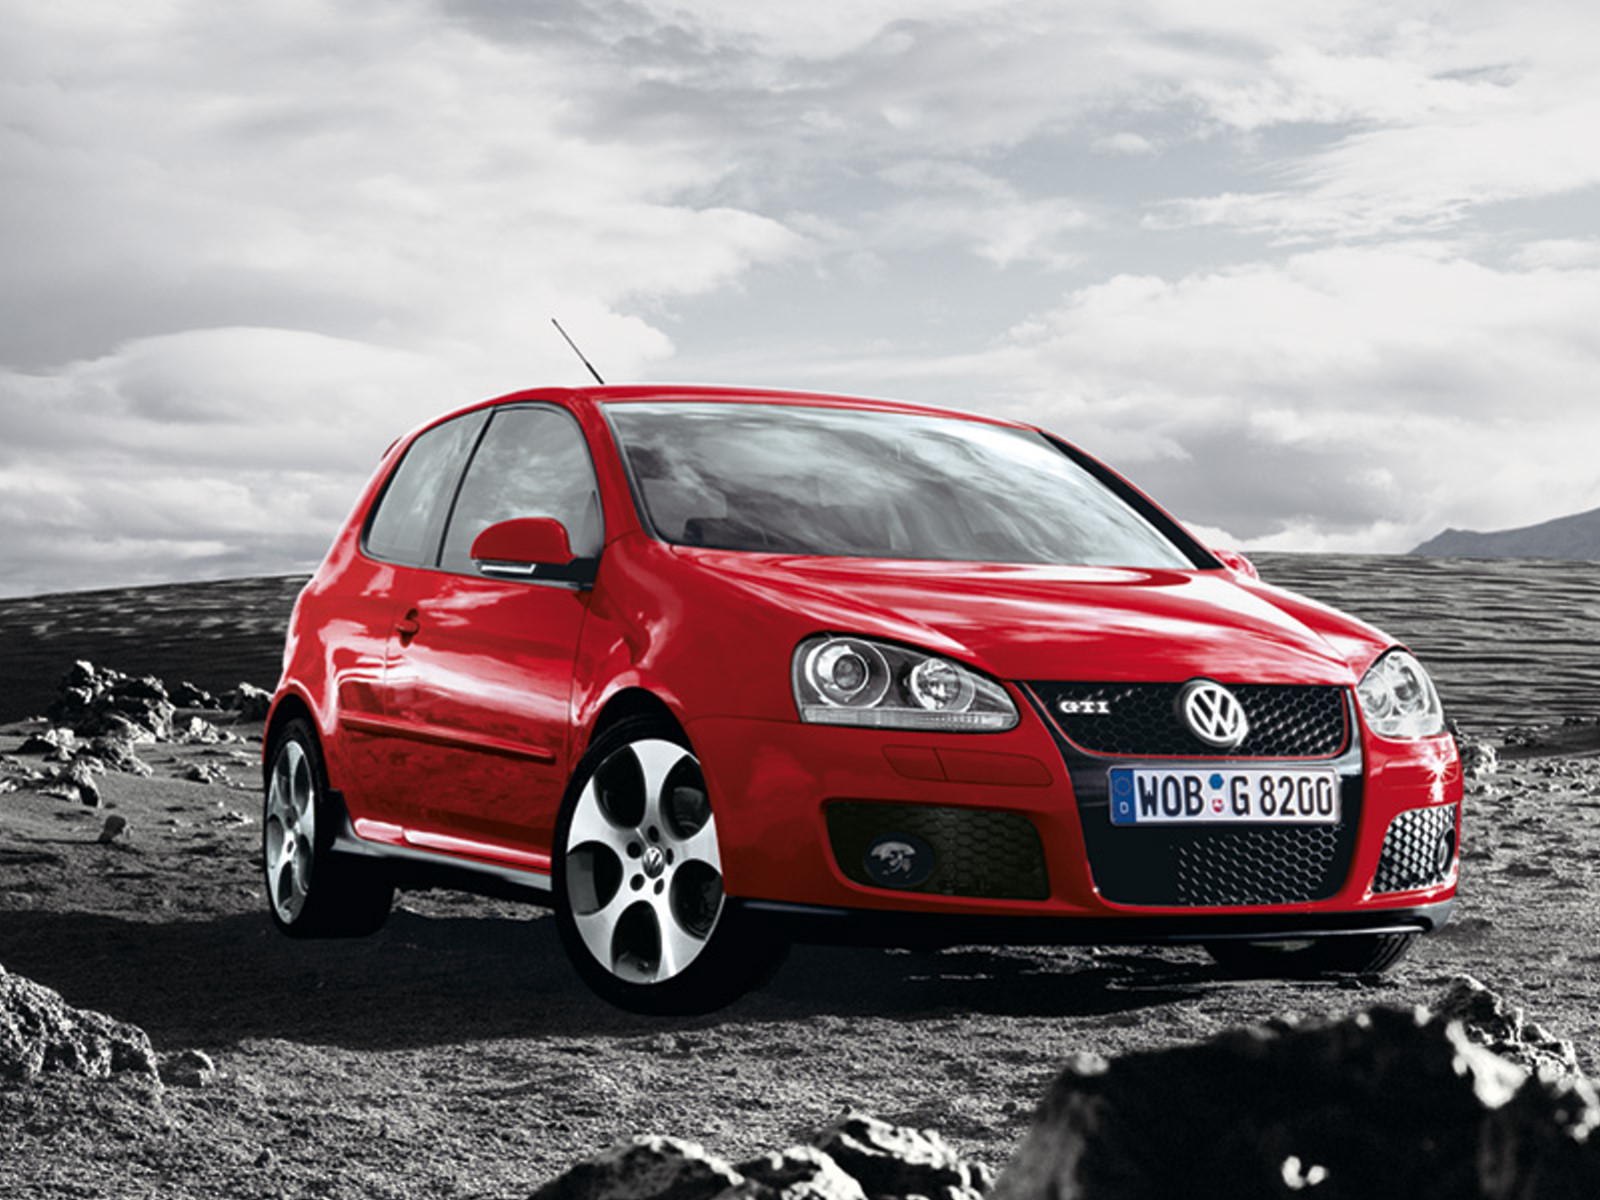 The Best Volkswagen Golf R GTI Wallpaper Ever Wallpapers 1600x1200